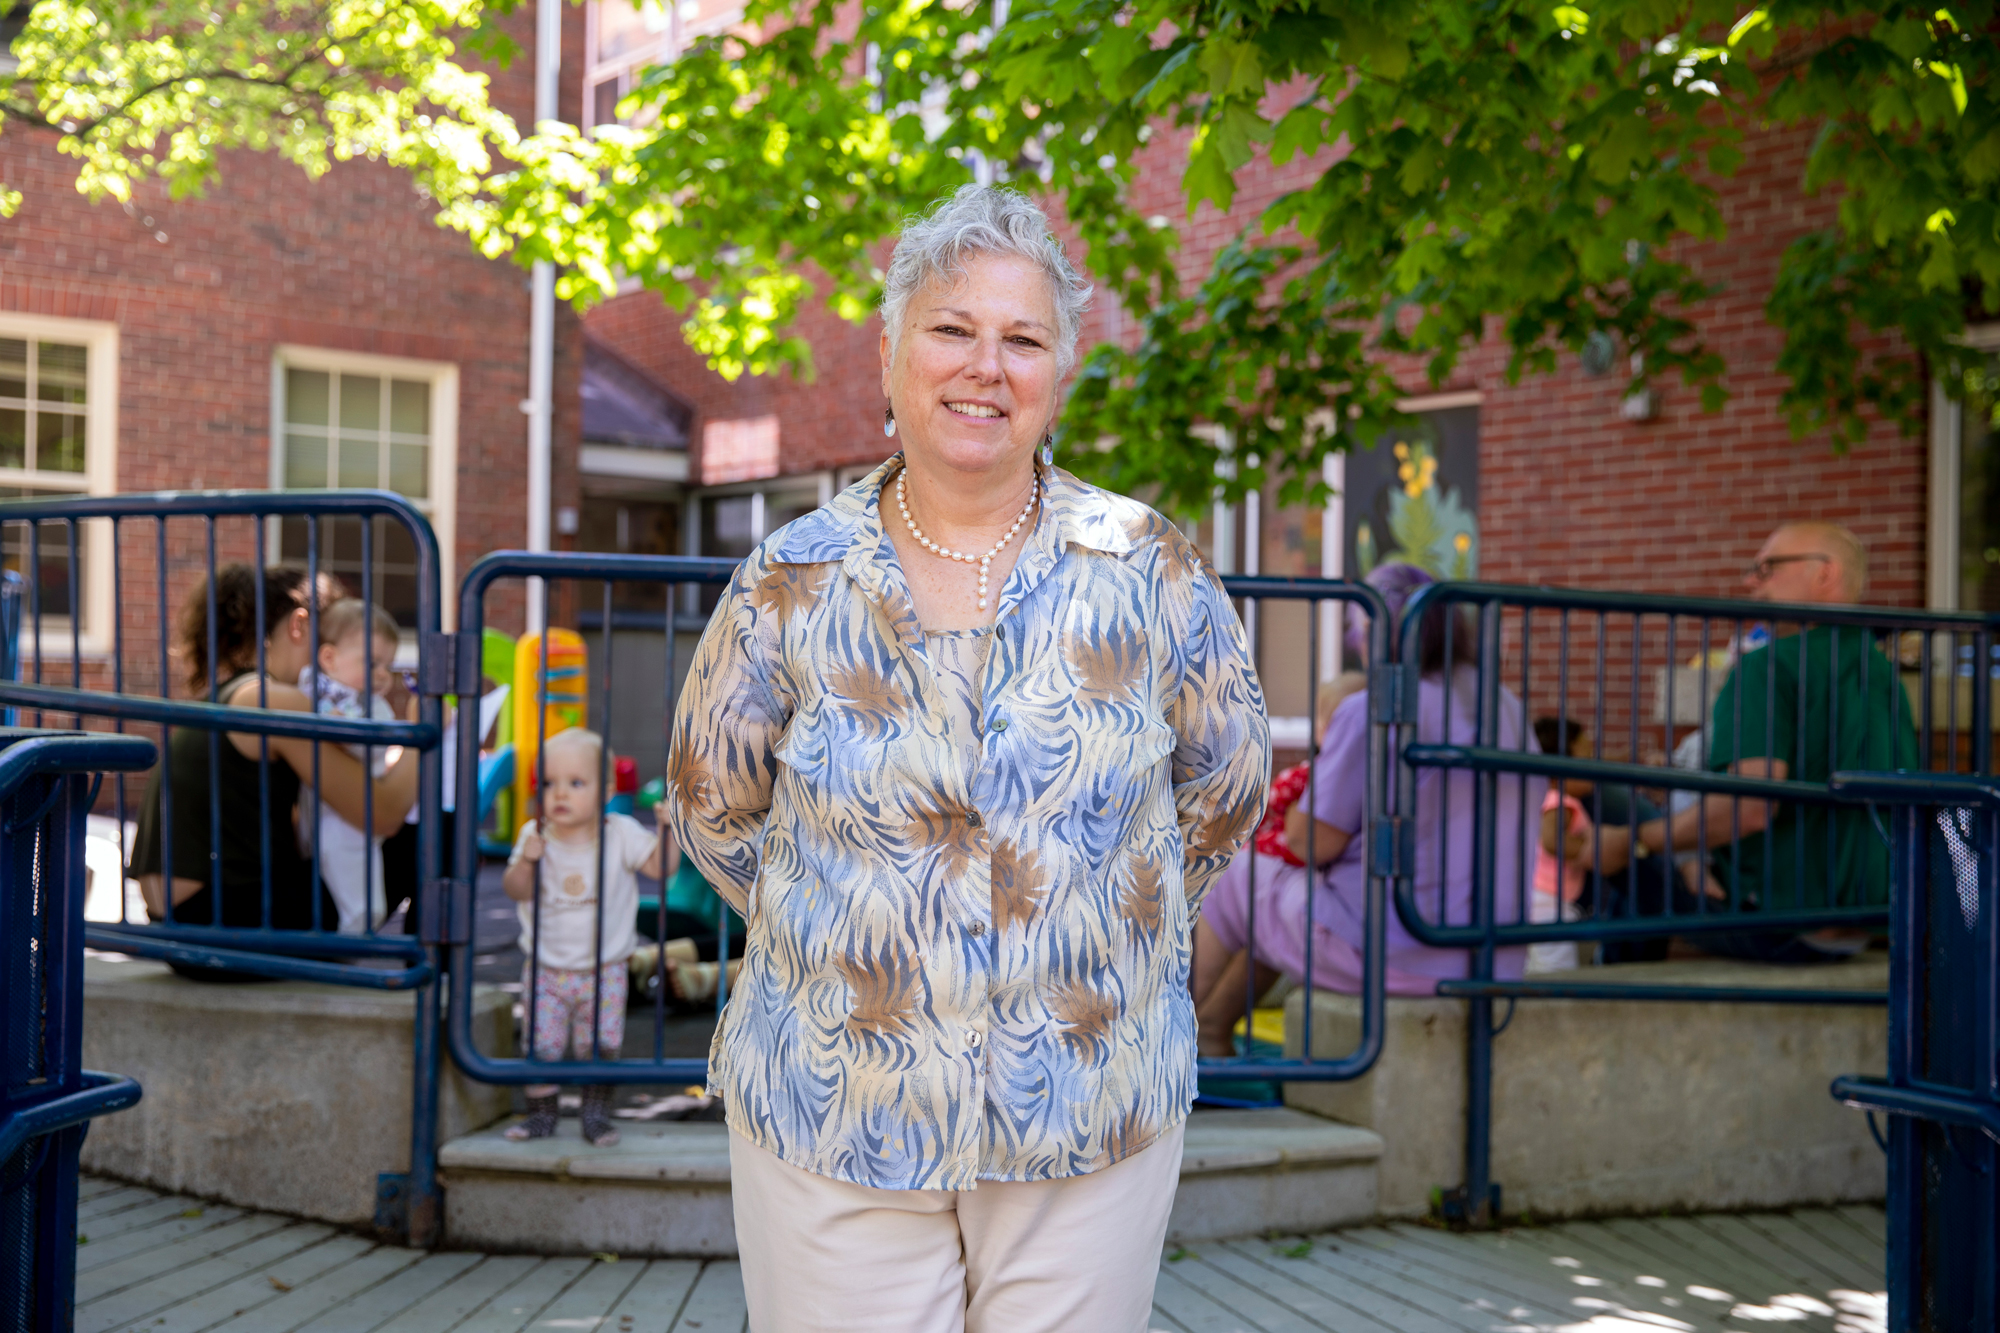 Lori Moses, executive director of Catherine Morrill Day Nursery in Portland. (Maine Public photo by Rebecca Conley)